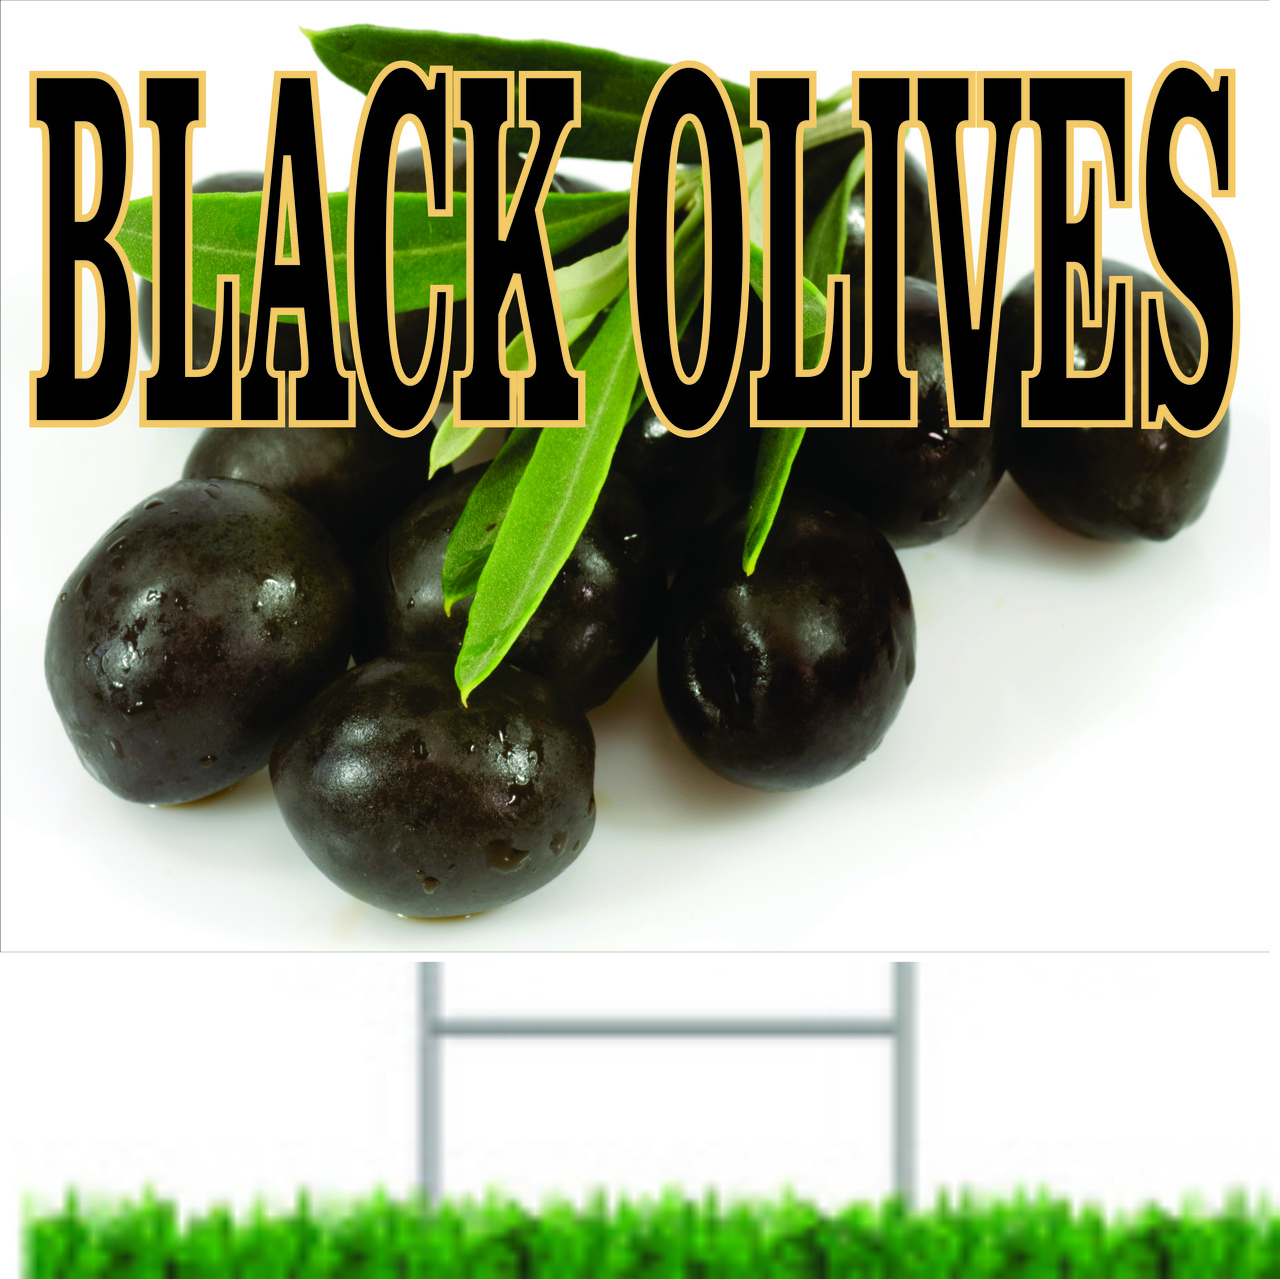 Very Noticeable Black Olive Road Sign Gets Customer Into your produce market.